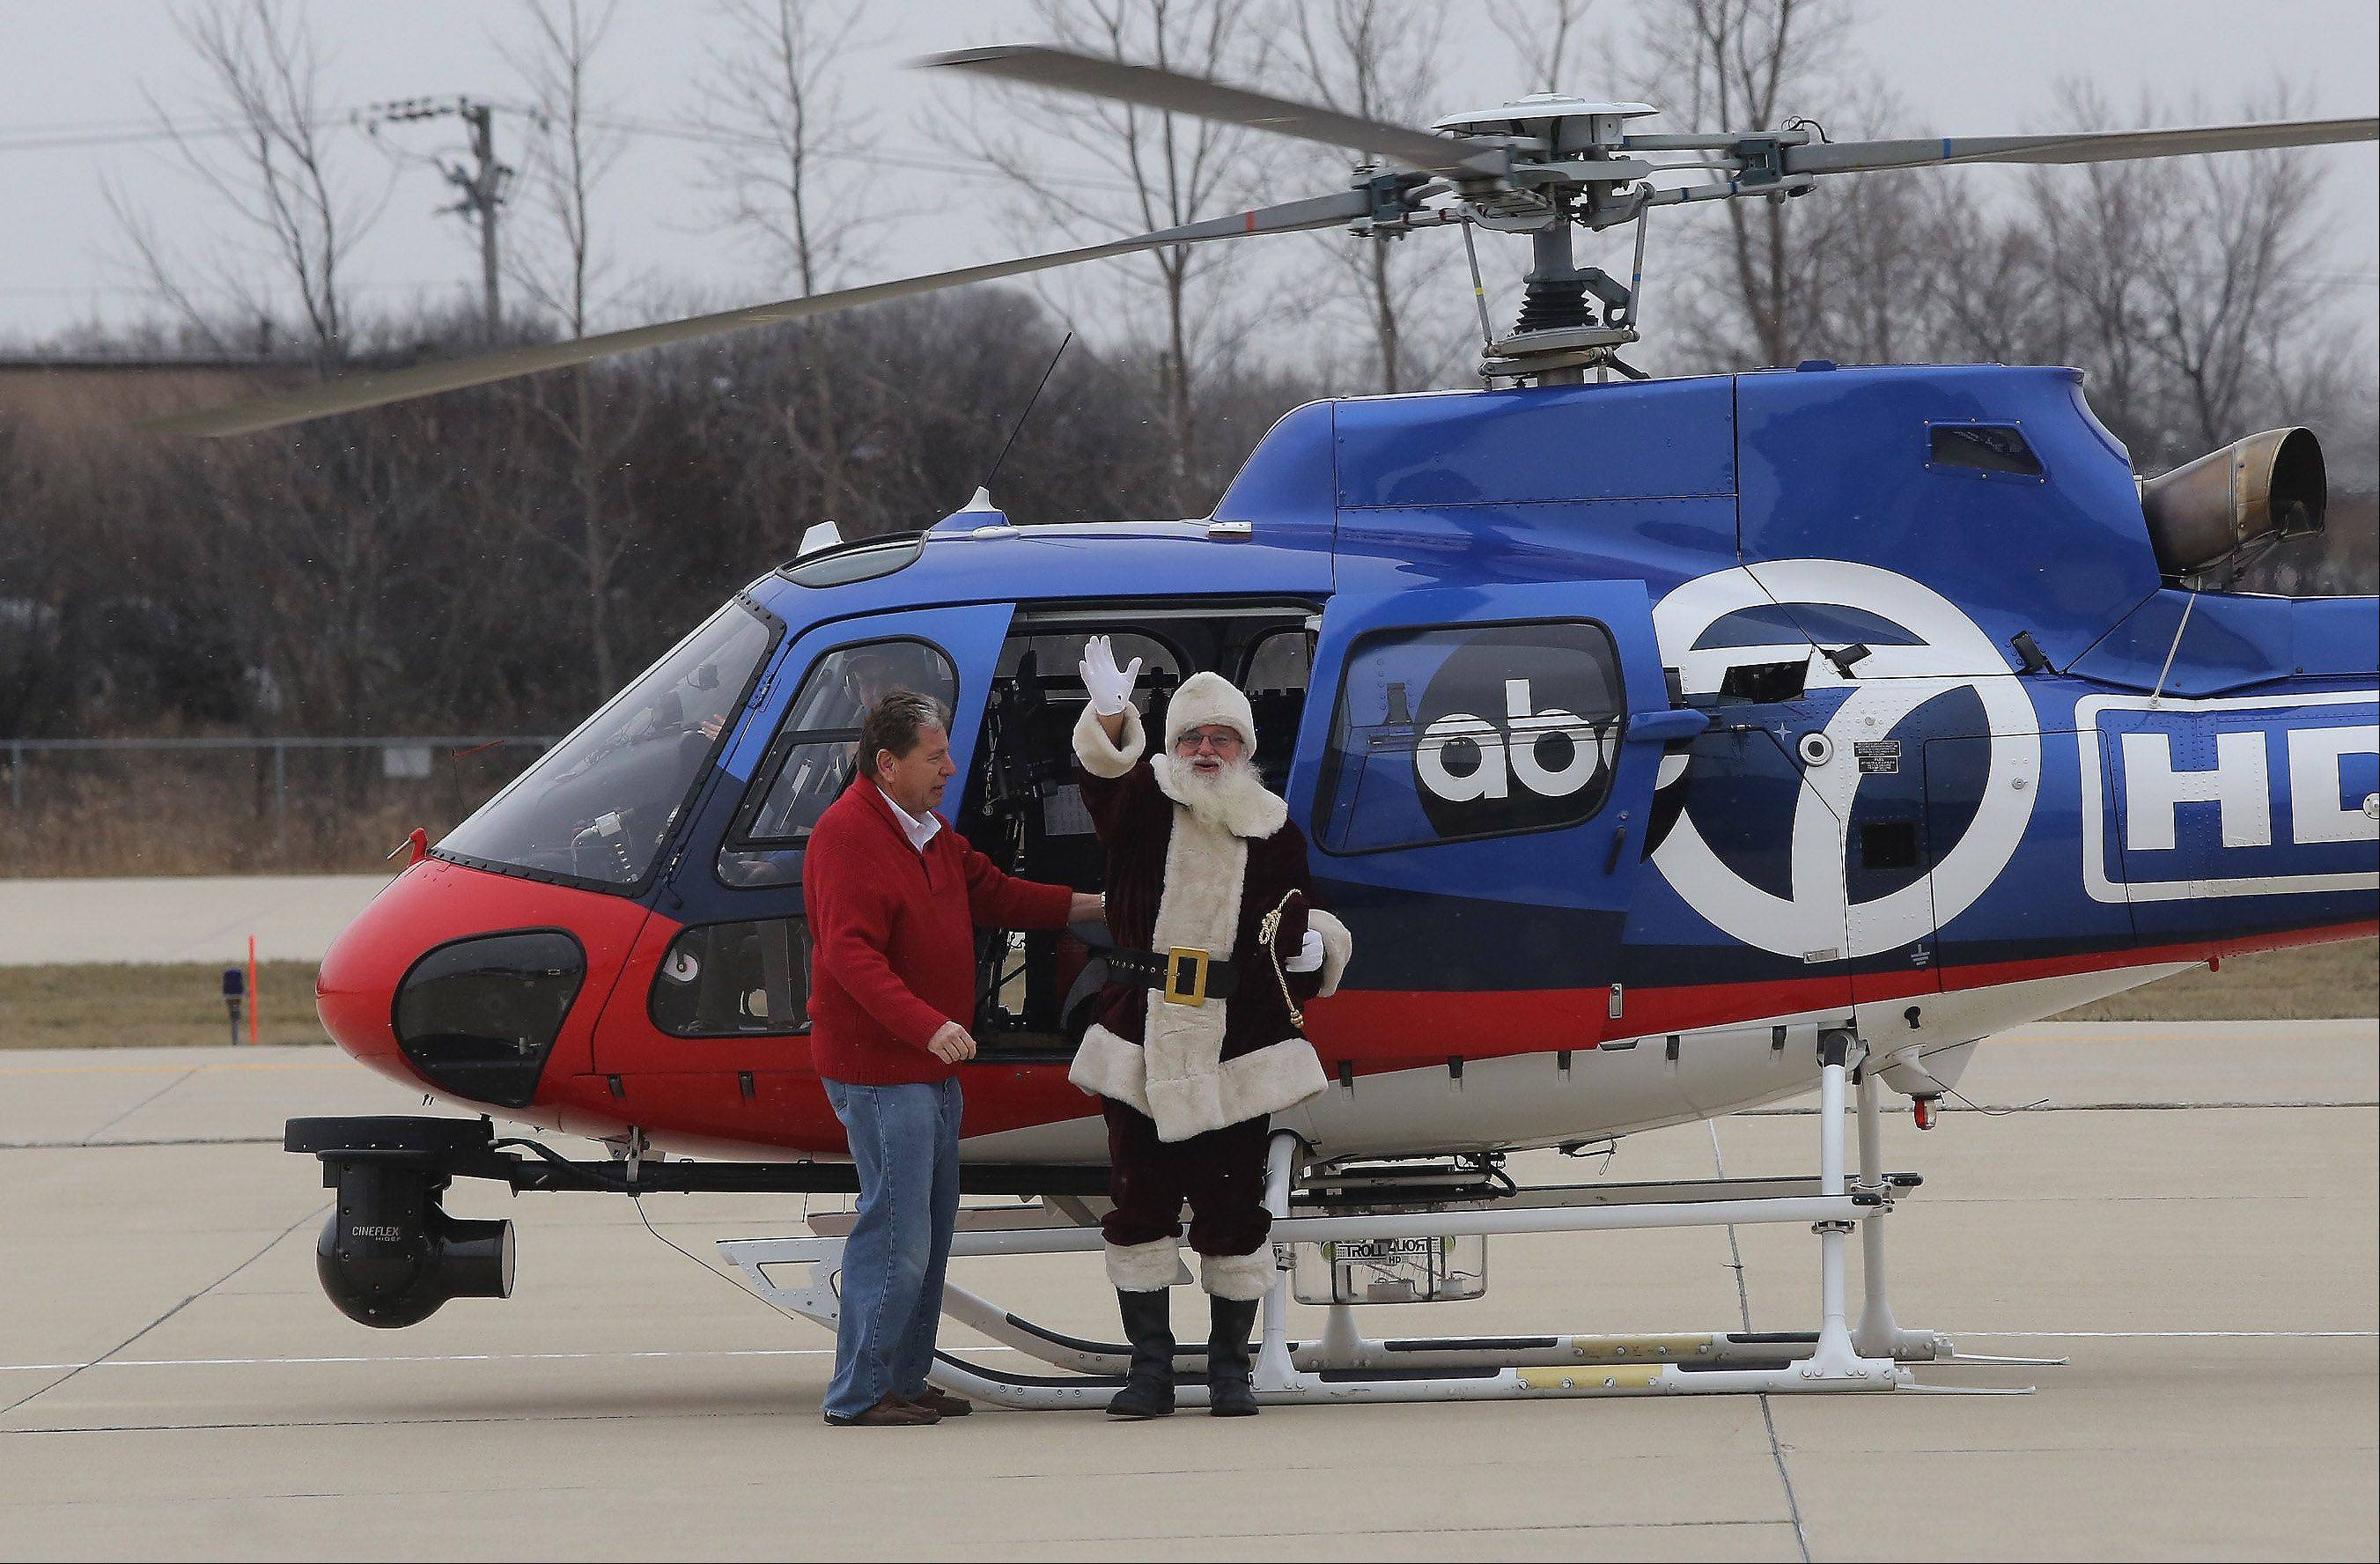 Northwest Flyers President J.P. Skip Barchfeld helps Santa get out of a helicopter Sunday as he arrives for Santa�s Flight to Schaumburg at the Schaumburg Regional Airport. The holiday event, sponsored by the Schaumburg Park District and The Northwest Flyers, drew about 300 to the airport for a visit with Santa, along with games and crafts.